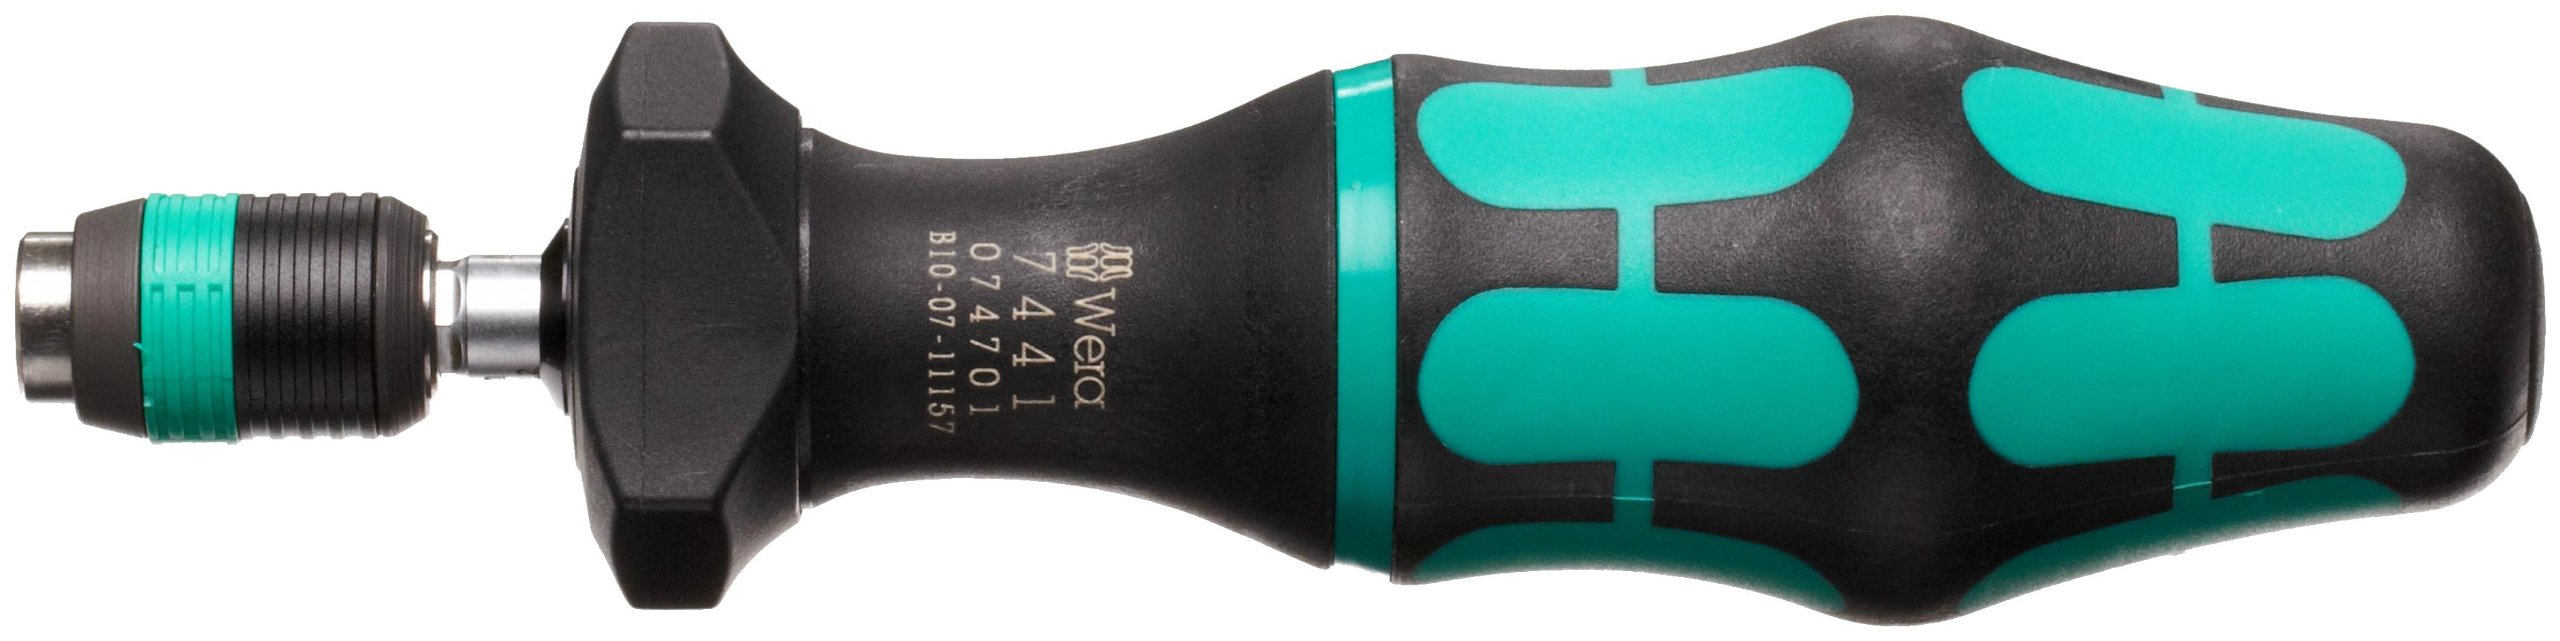 Wera 05074701001 Kraftform 7441 Hexagon Torque Screwdriver, 1/4'' Head, 1.2-3.0 Nm Variable Torque Adjustment Range